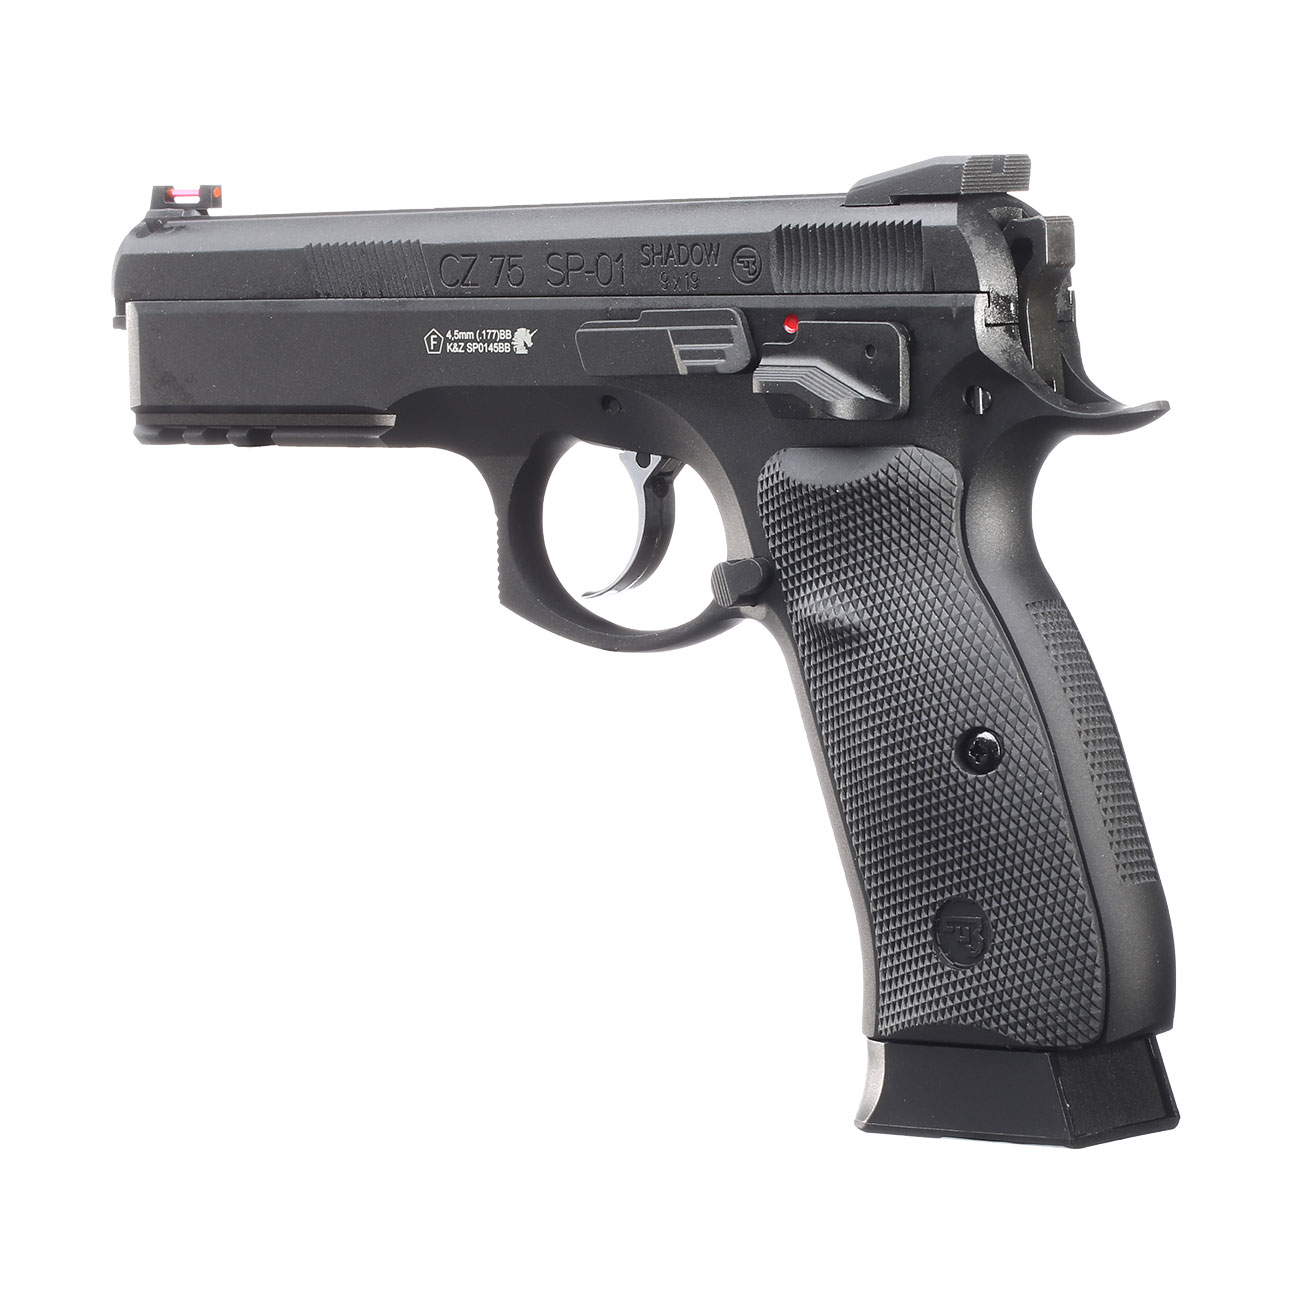 ASG CZ 75 SP-01 Shadow CO2-Luftpistole Kal. 4,5mm BB schwarz Vollmetall Blowback 2